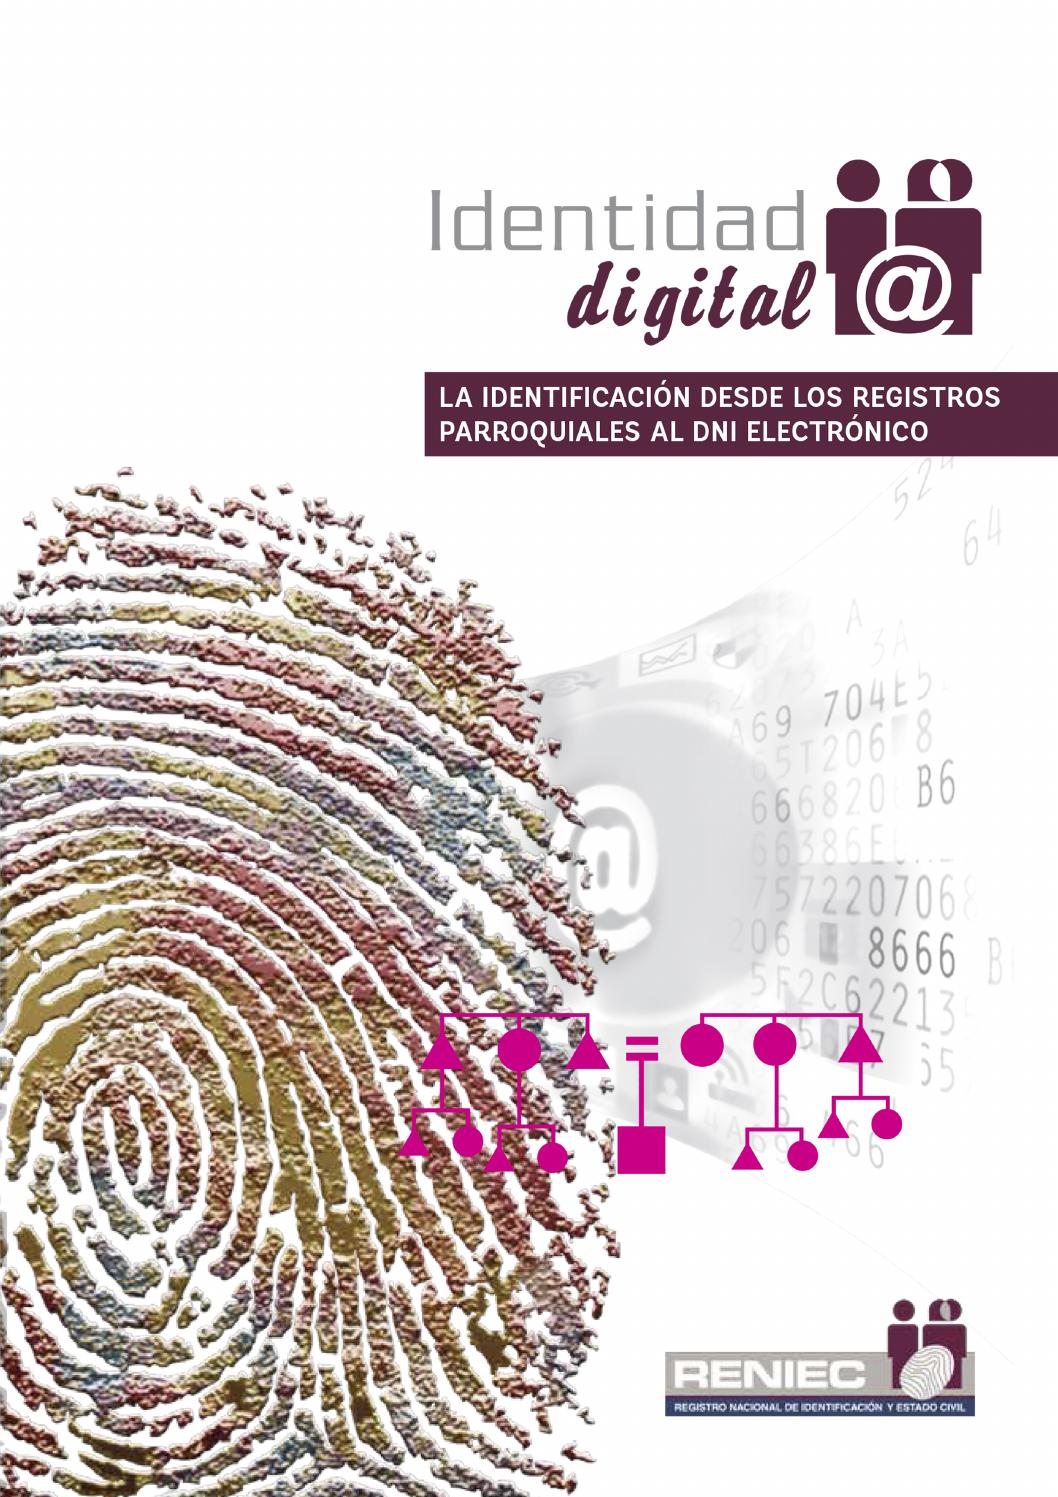 Web reniec indentidad digital by JULIO TORRES - issuu